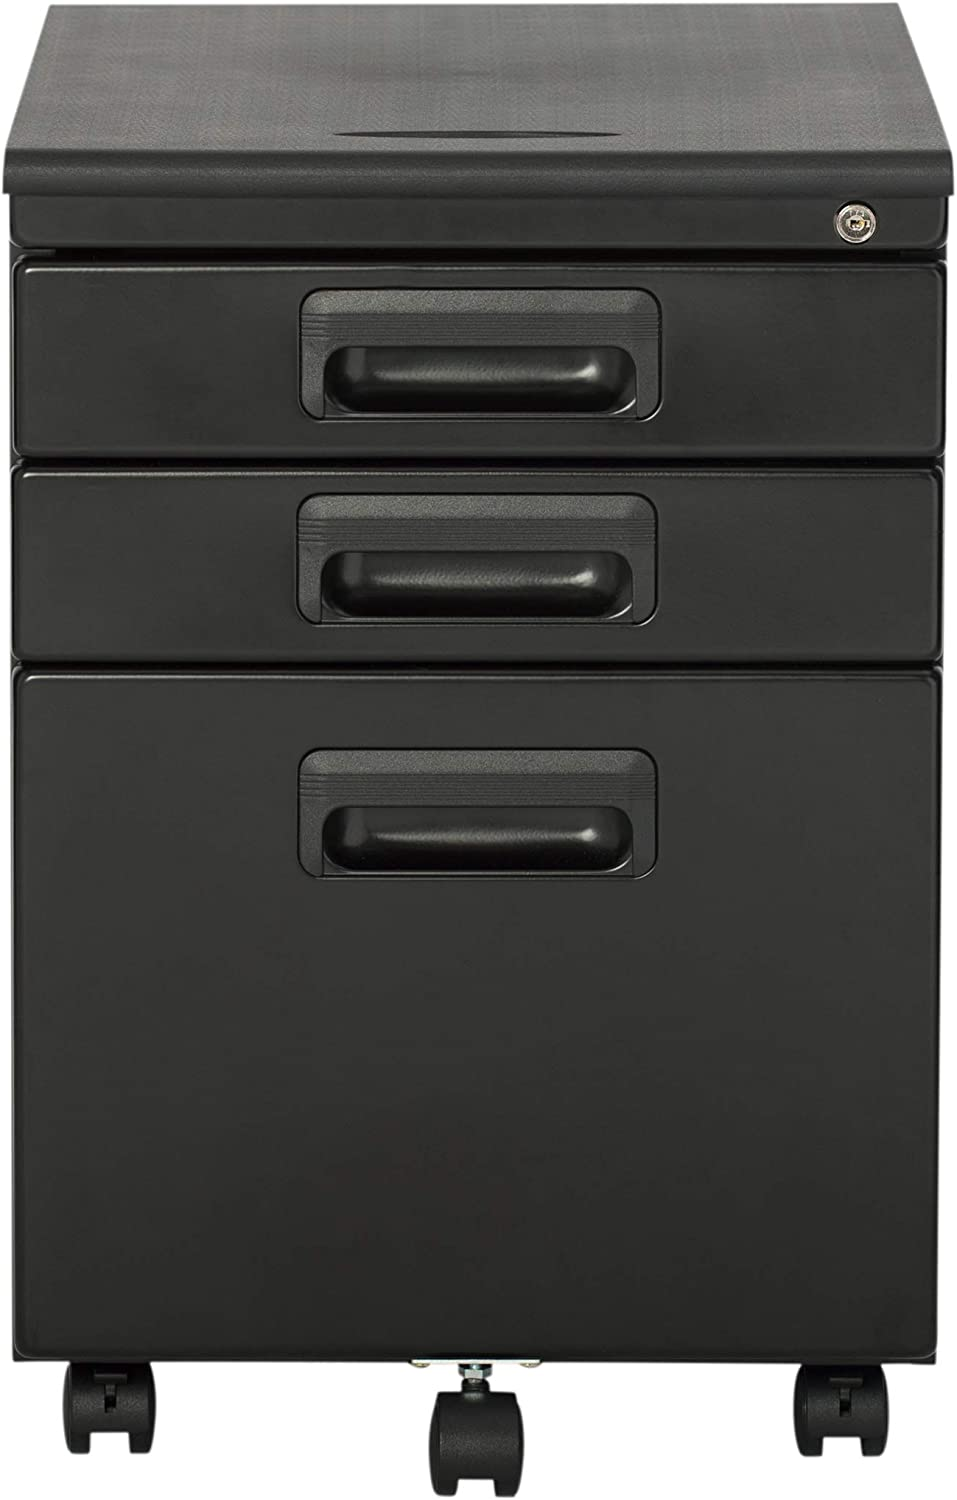 Craft Hobby Essentials Black Metal 3 Vertical Mobile Filing Cabinet 15 75 W X 22 D Craft Supply Storage With Locking Drawers